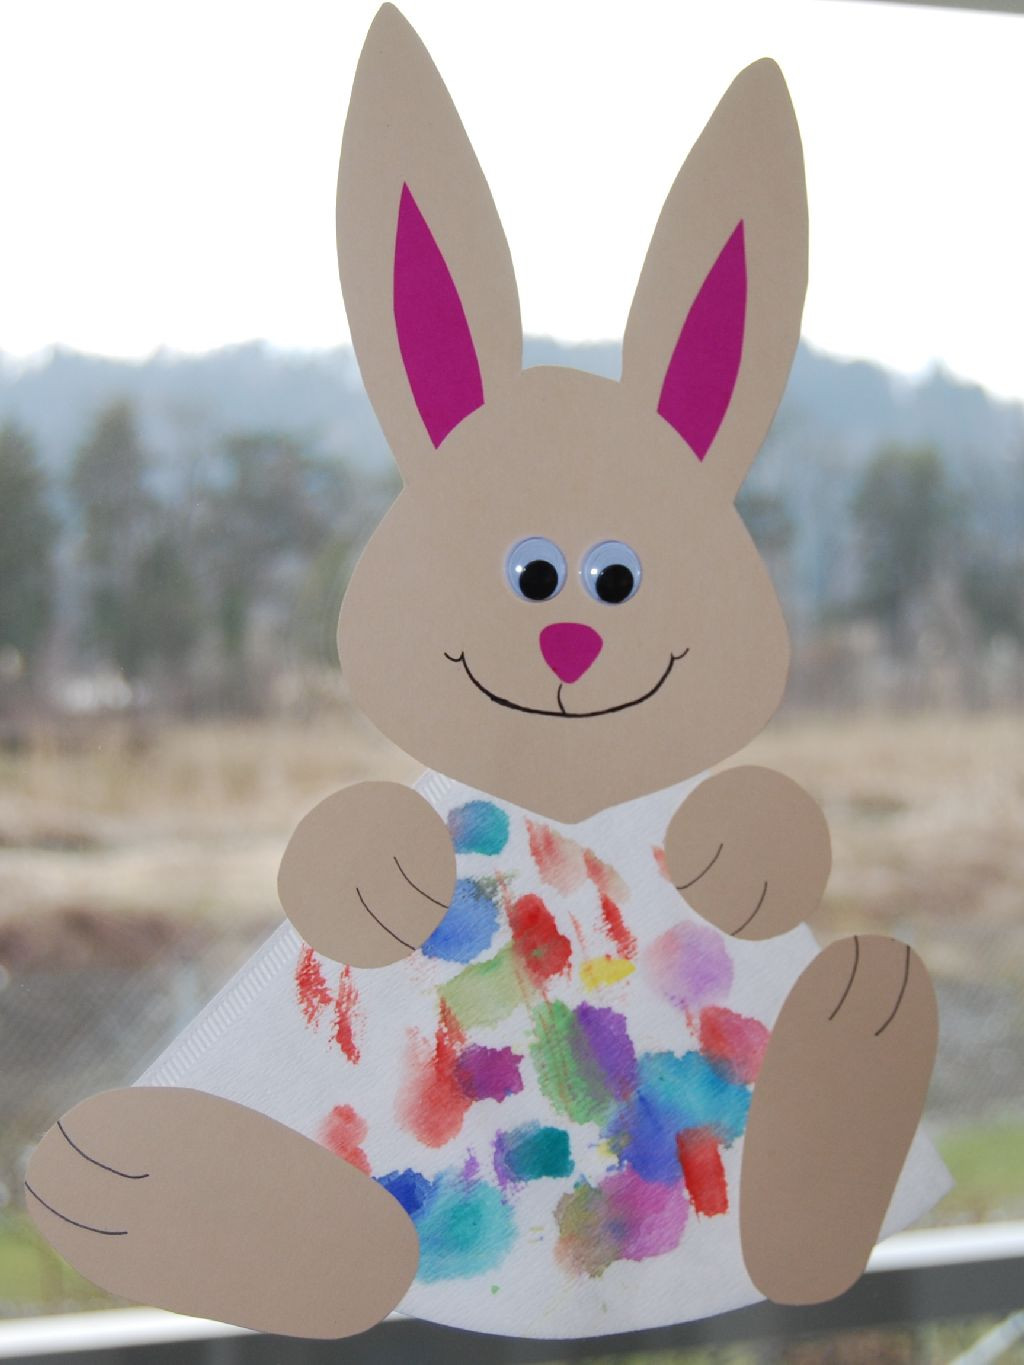 Best ideas about Easter Craft Ideas For Preschoolers . Save or Pin 30 CREATIVE EASTER CRAFT IDEAS FOR KIDS Godfather Style Now.